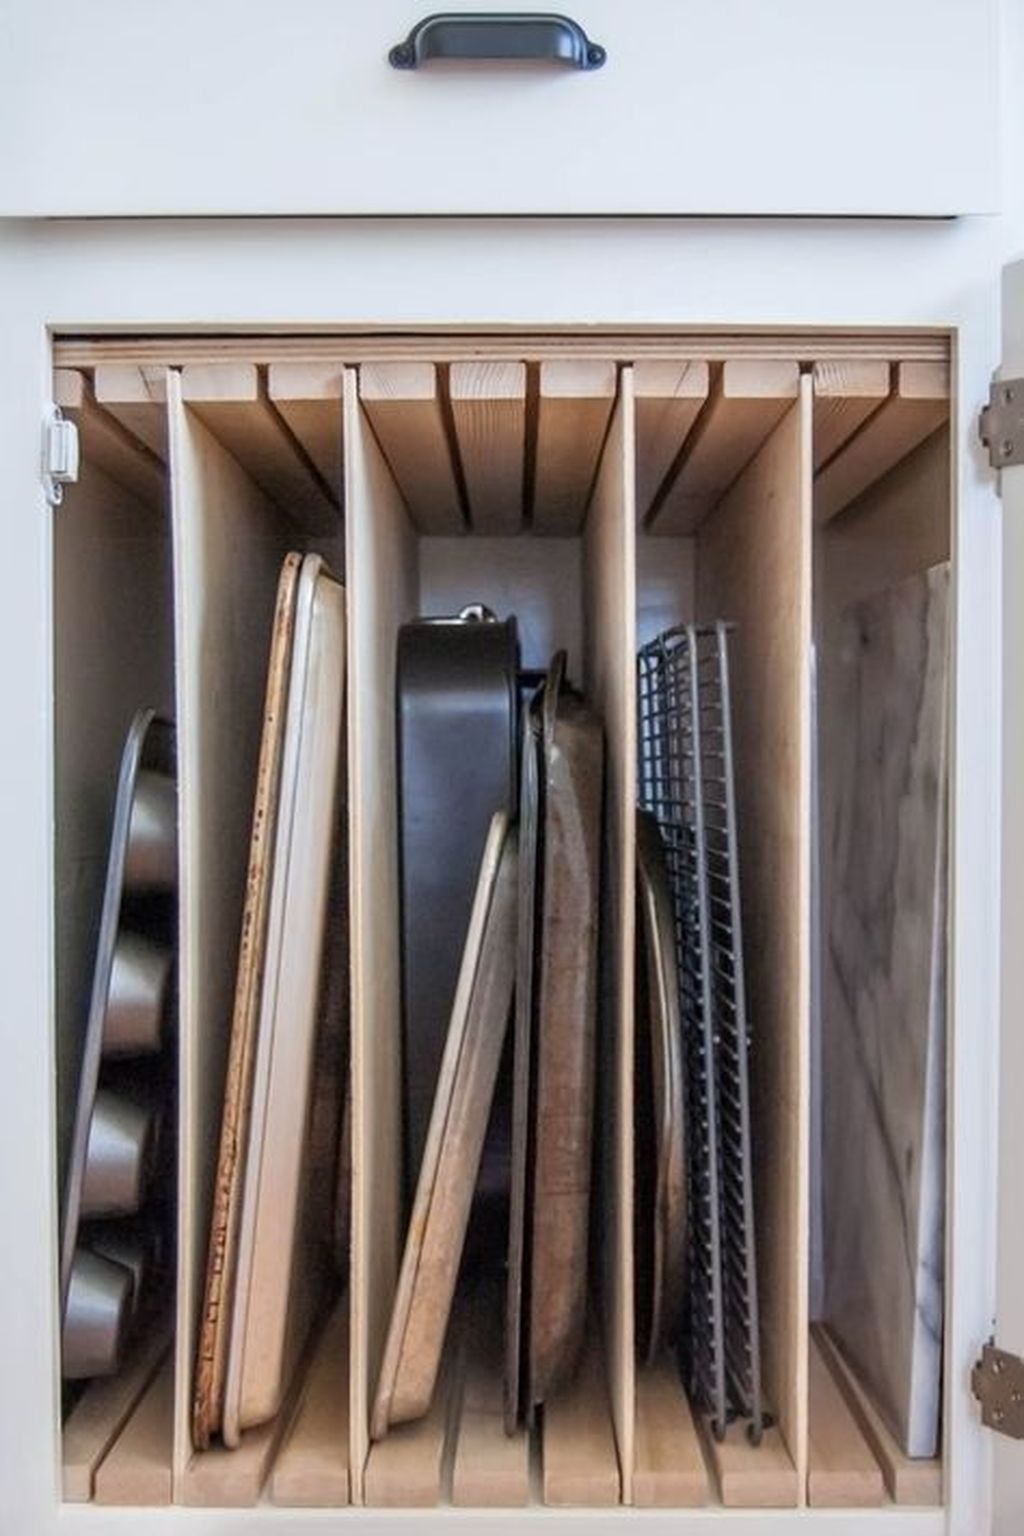 Fancy Diy Organizing Storage Projects Ideas To Try 14